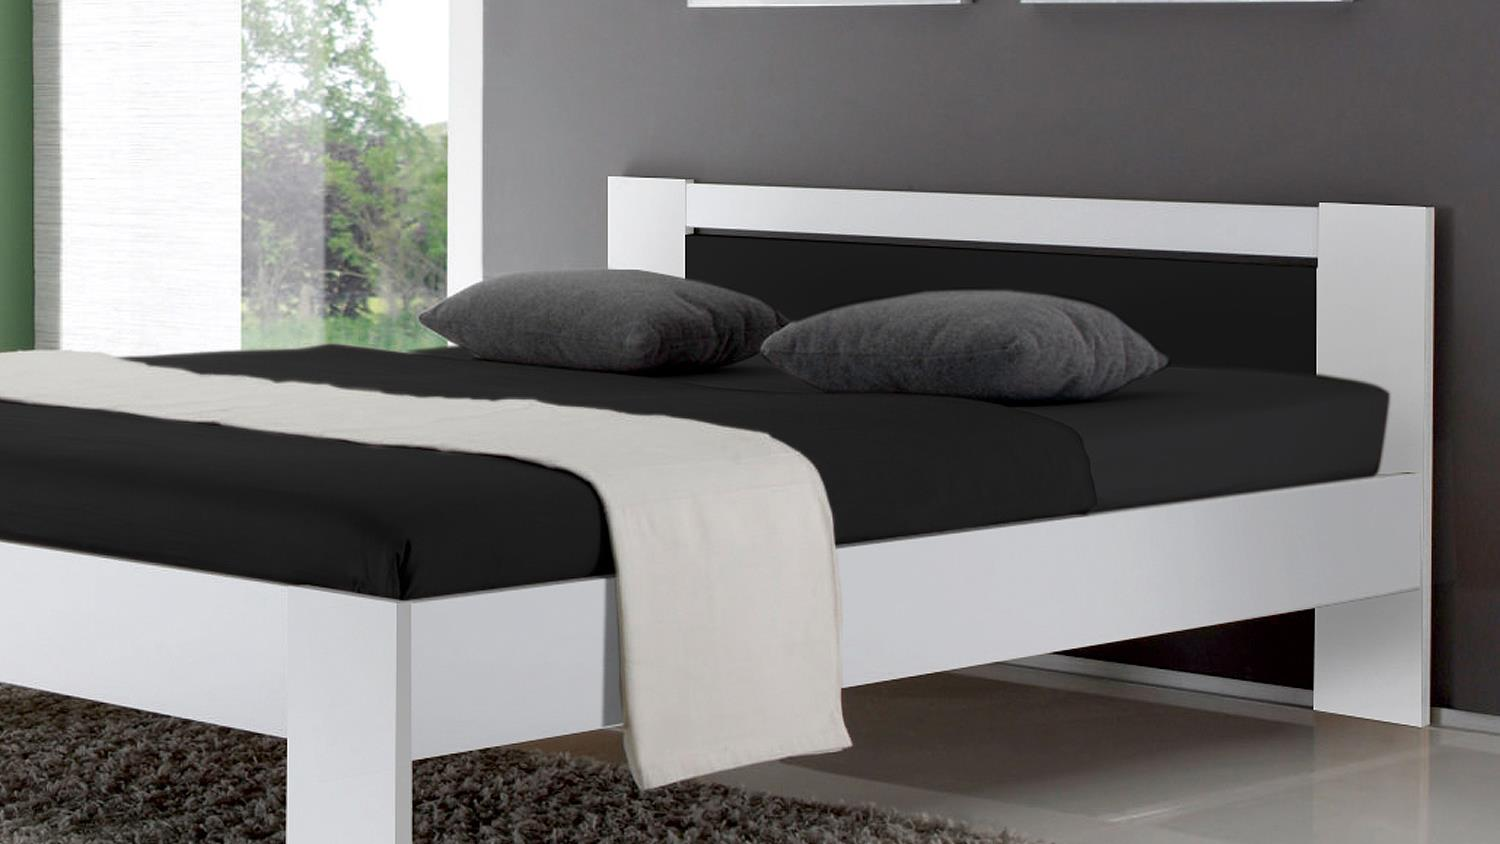 bett vega futonbett in schwarz wei mit rollrost und matratze 140x200. Black Bedroom Furniture Sets. Home Design Ideas